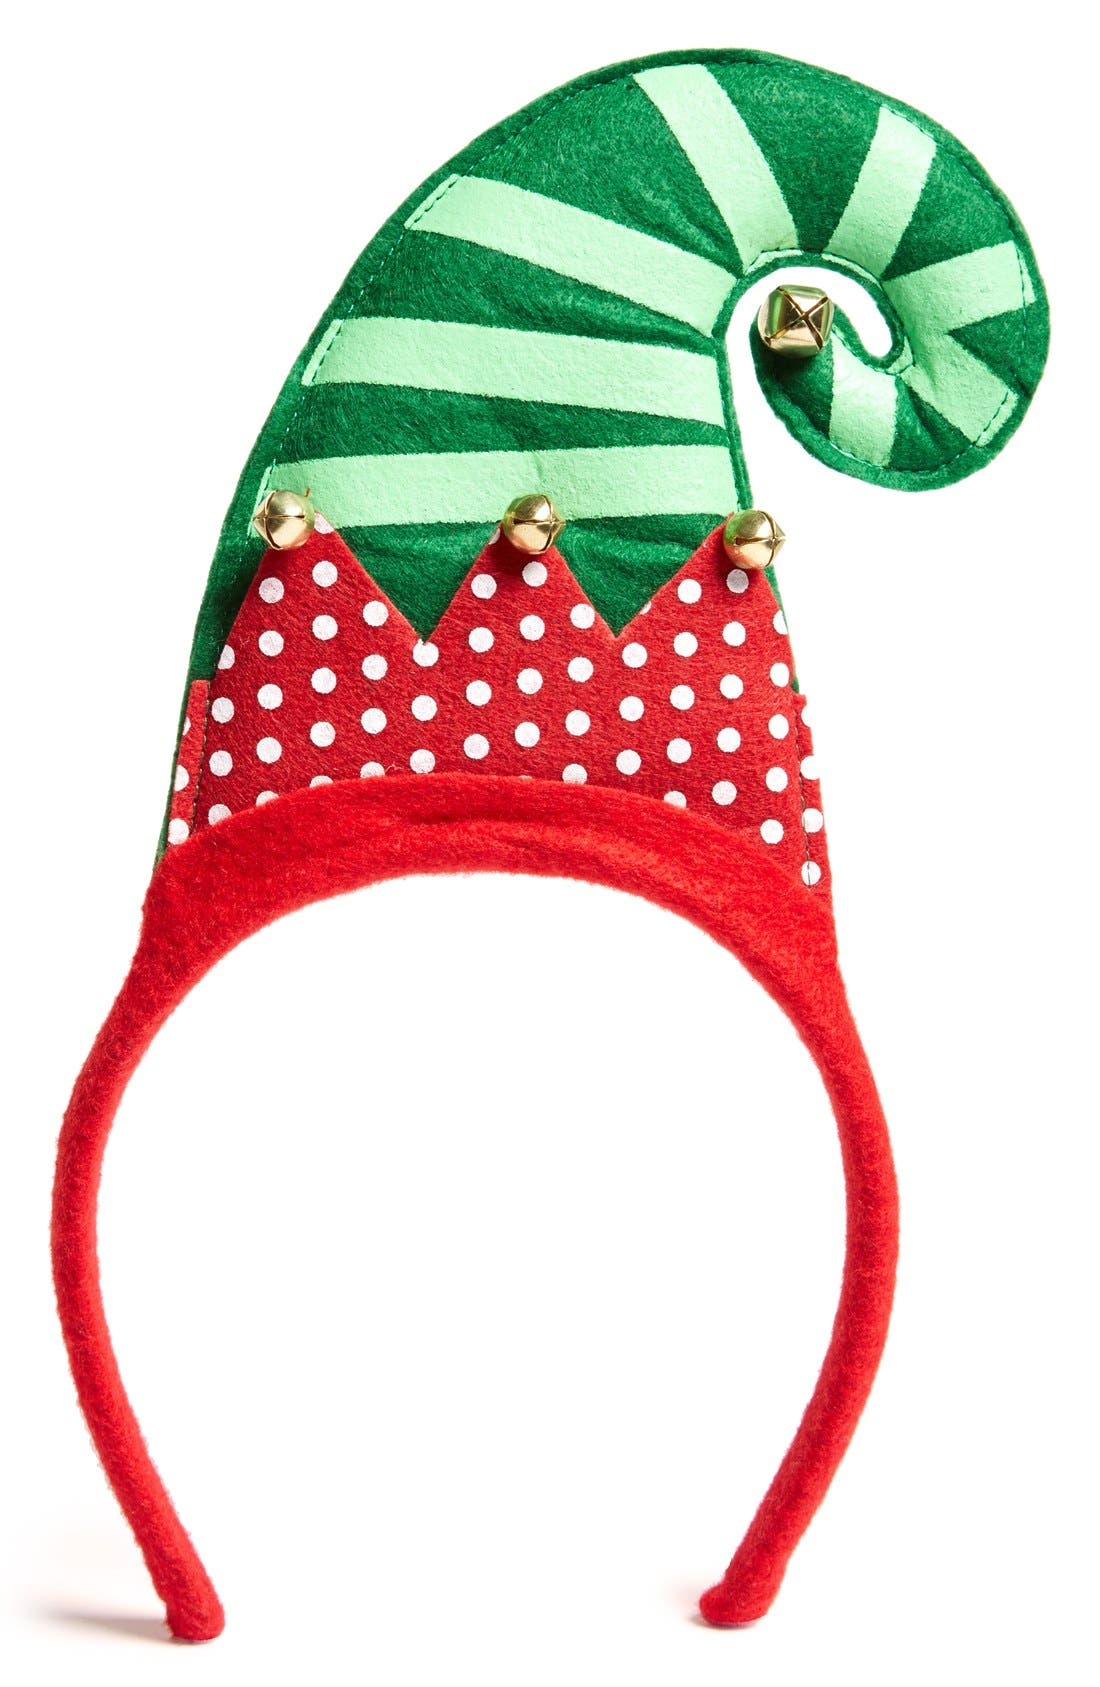 Main Image - Capelli of New York Elf Hat Headband